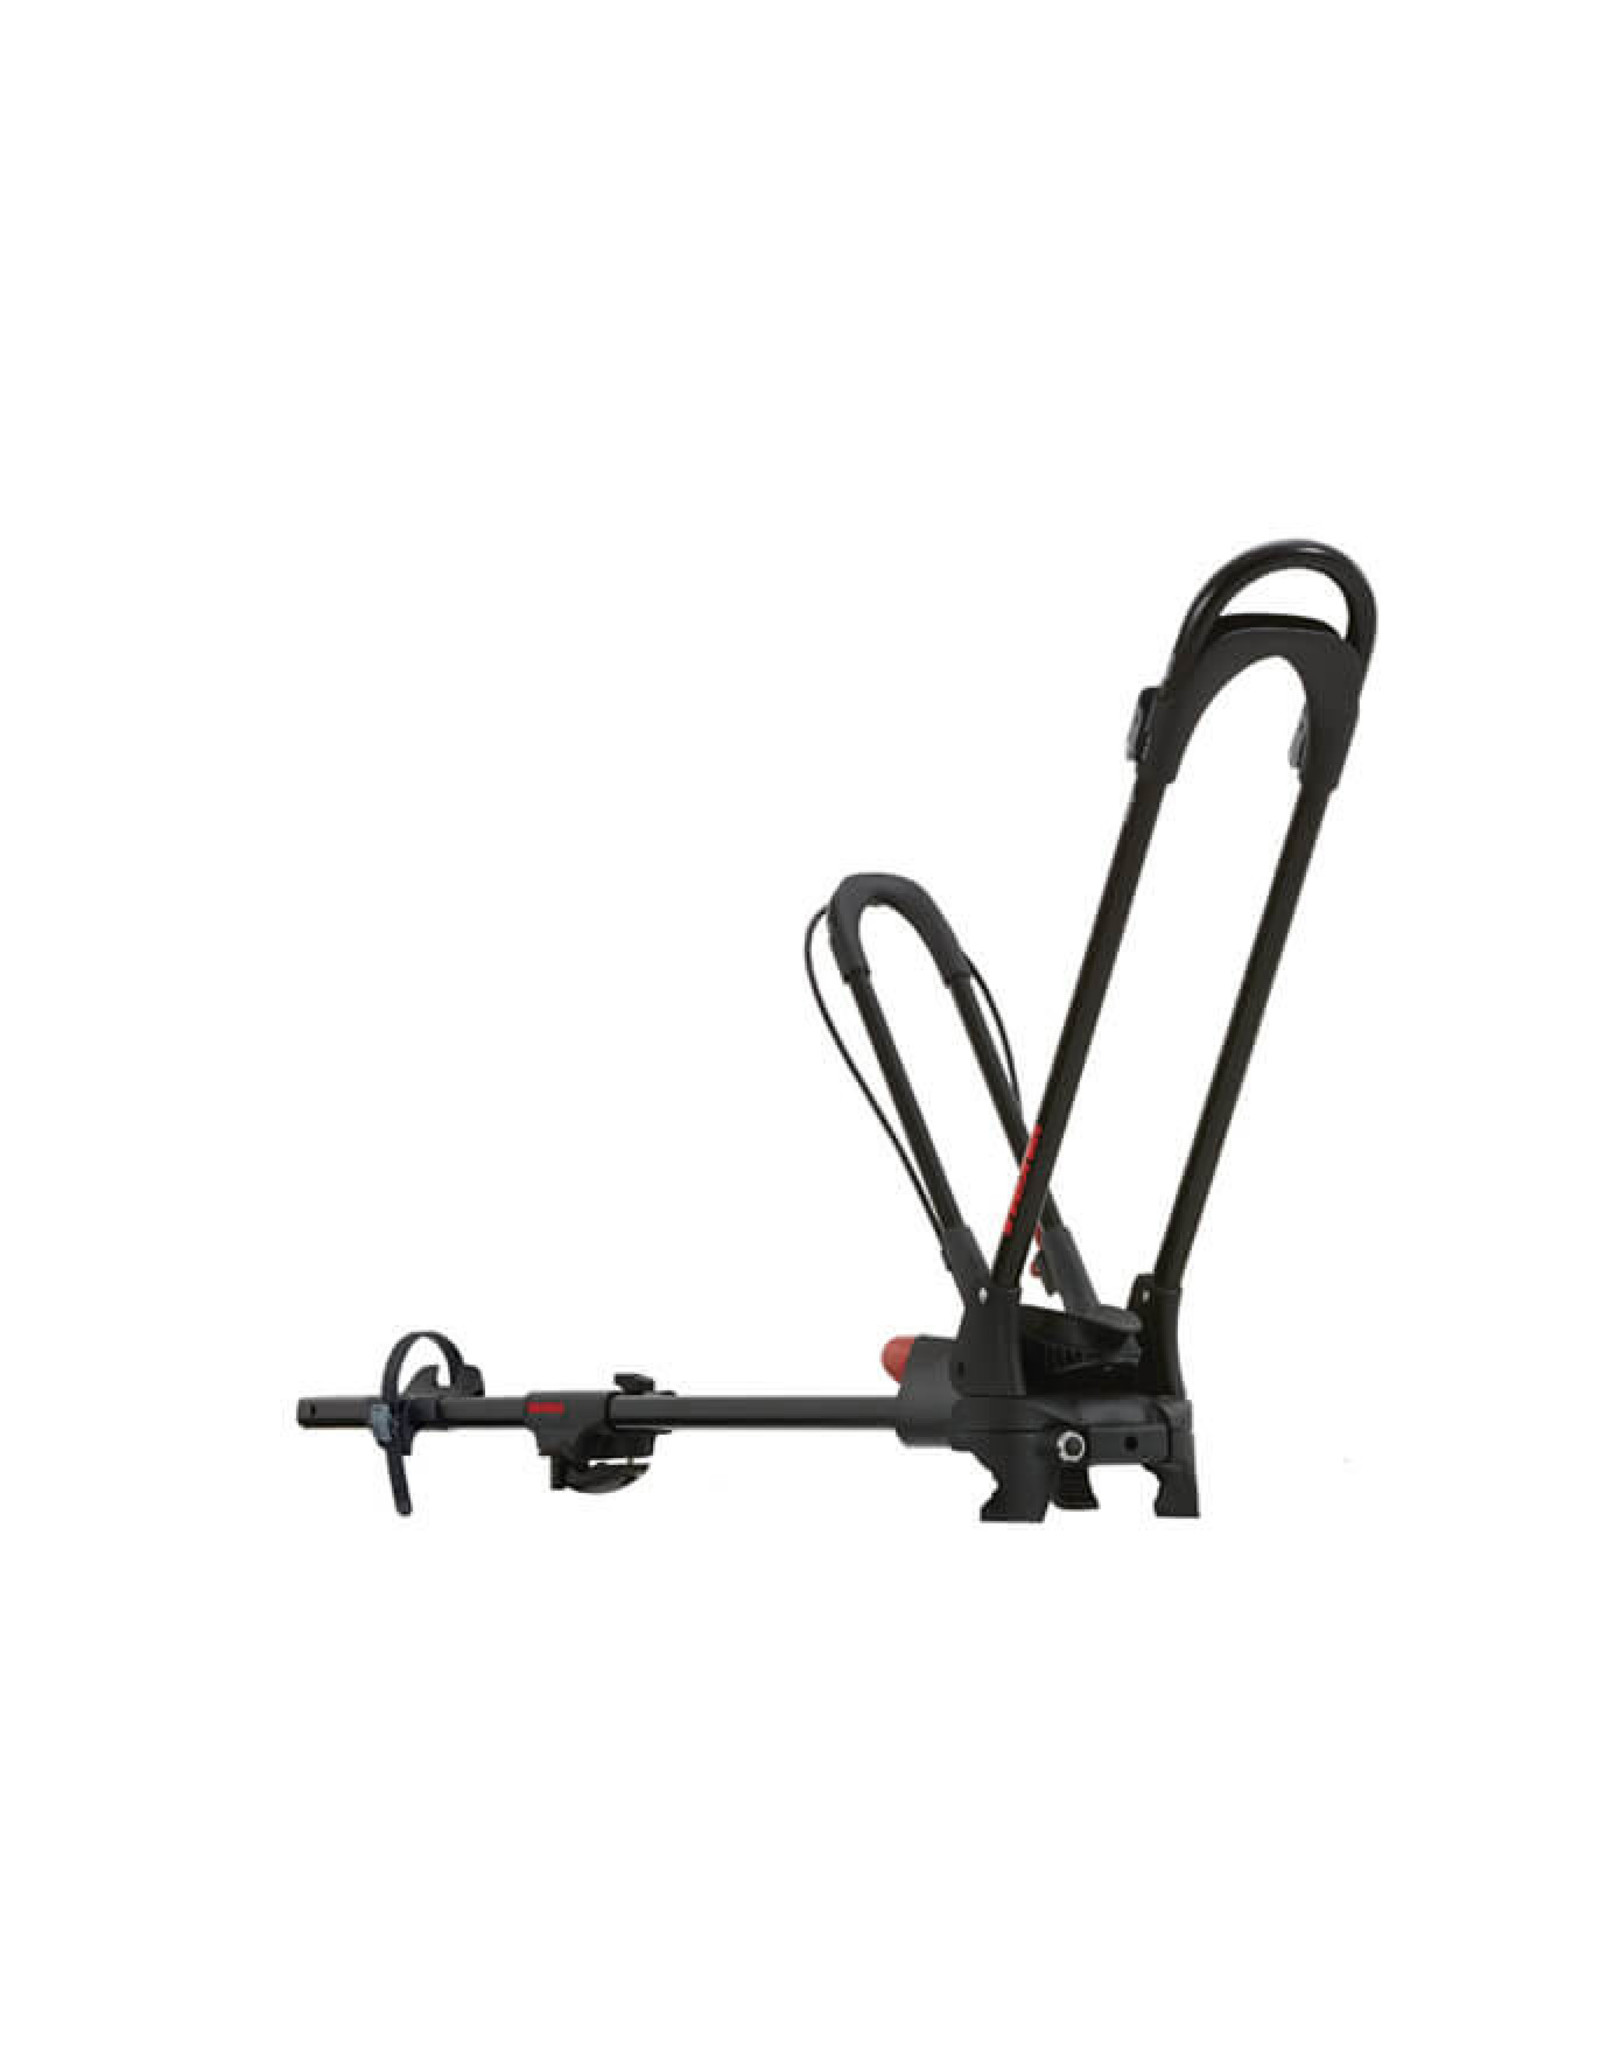 YAKIMA YAKIMA - FrontLoader - Rooftop Upright  Bike Mount